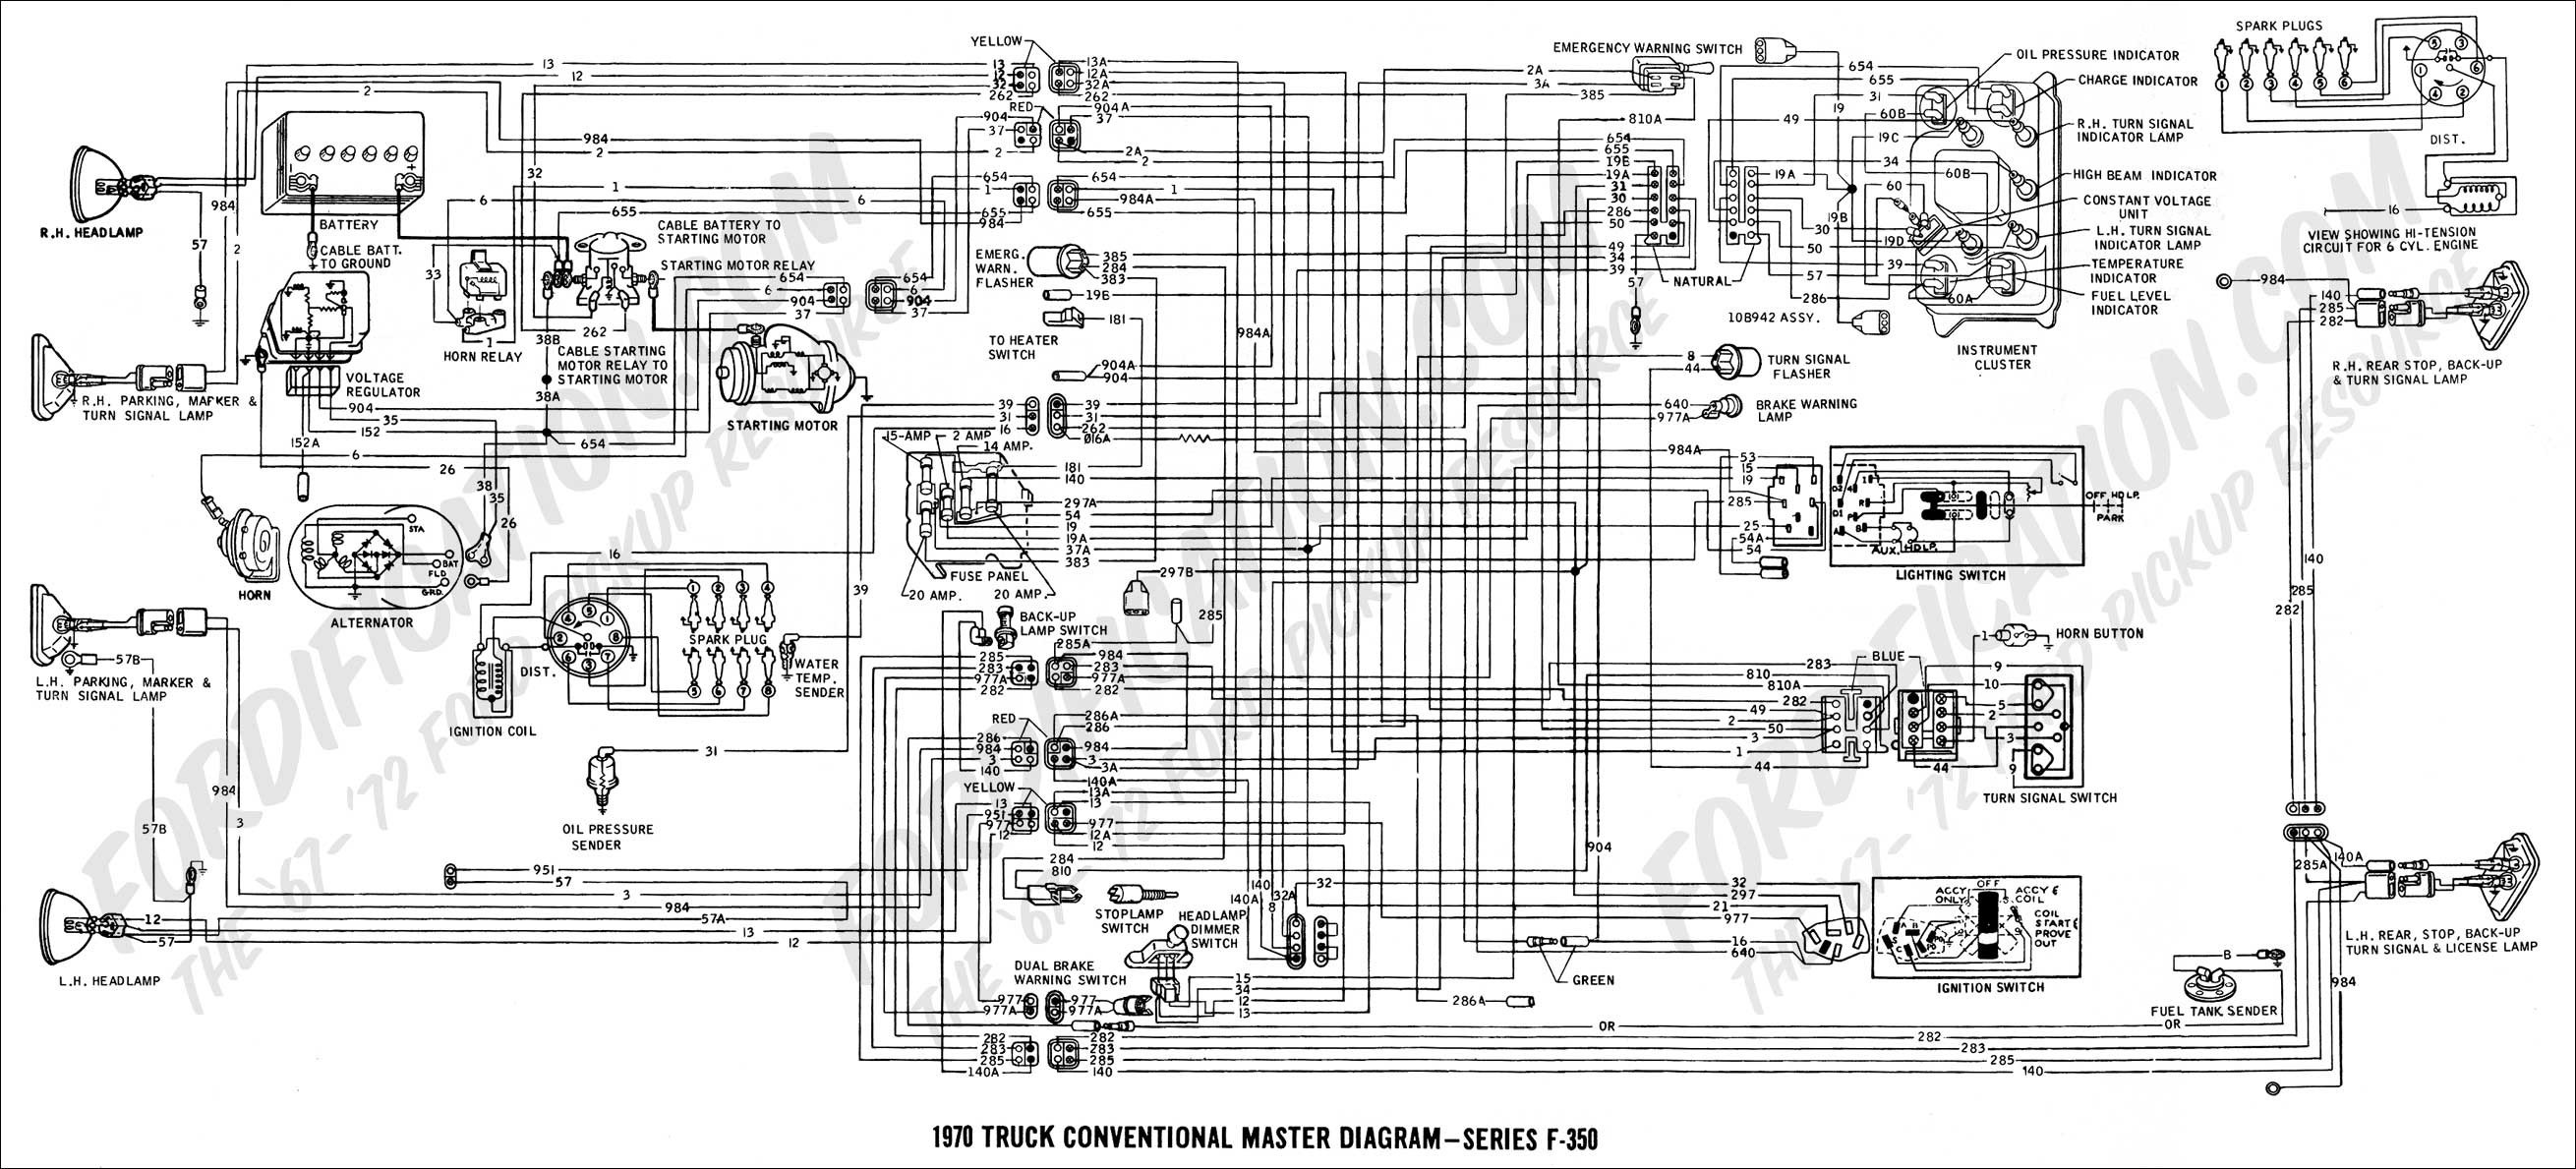 Truck Camper Wiring Diagram Wiring Diagram Euro 13 Pin Plug for ifor ...